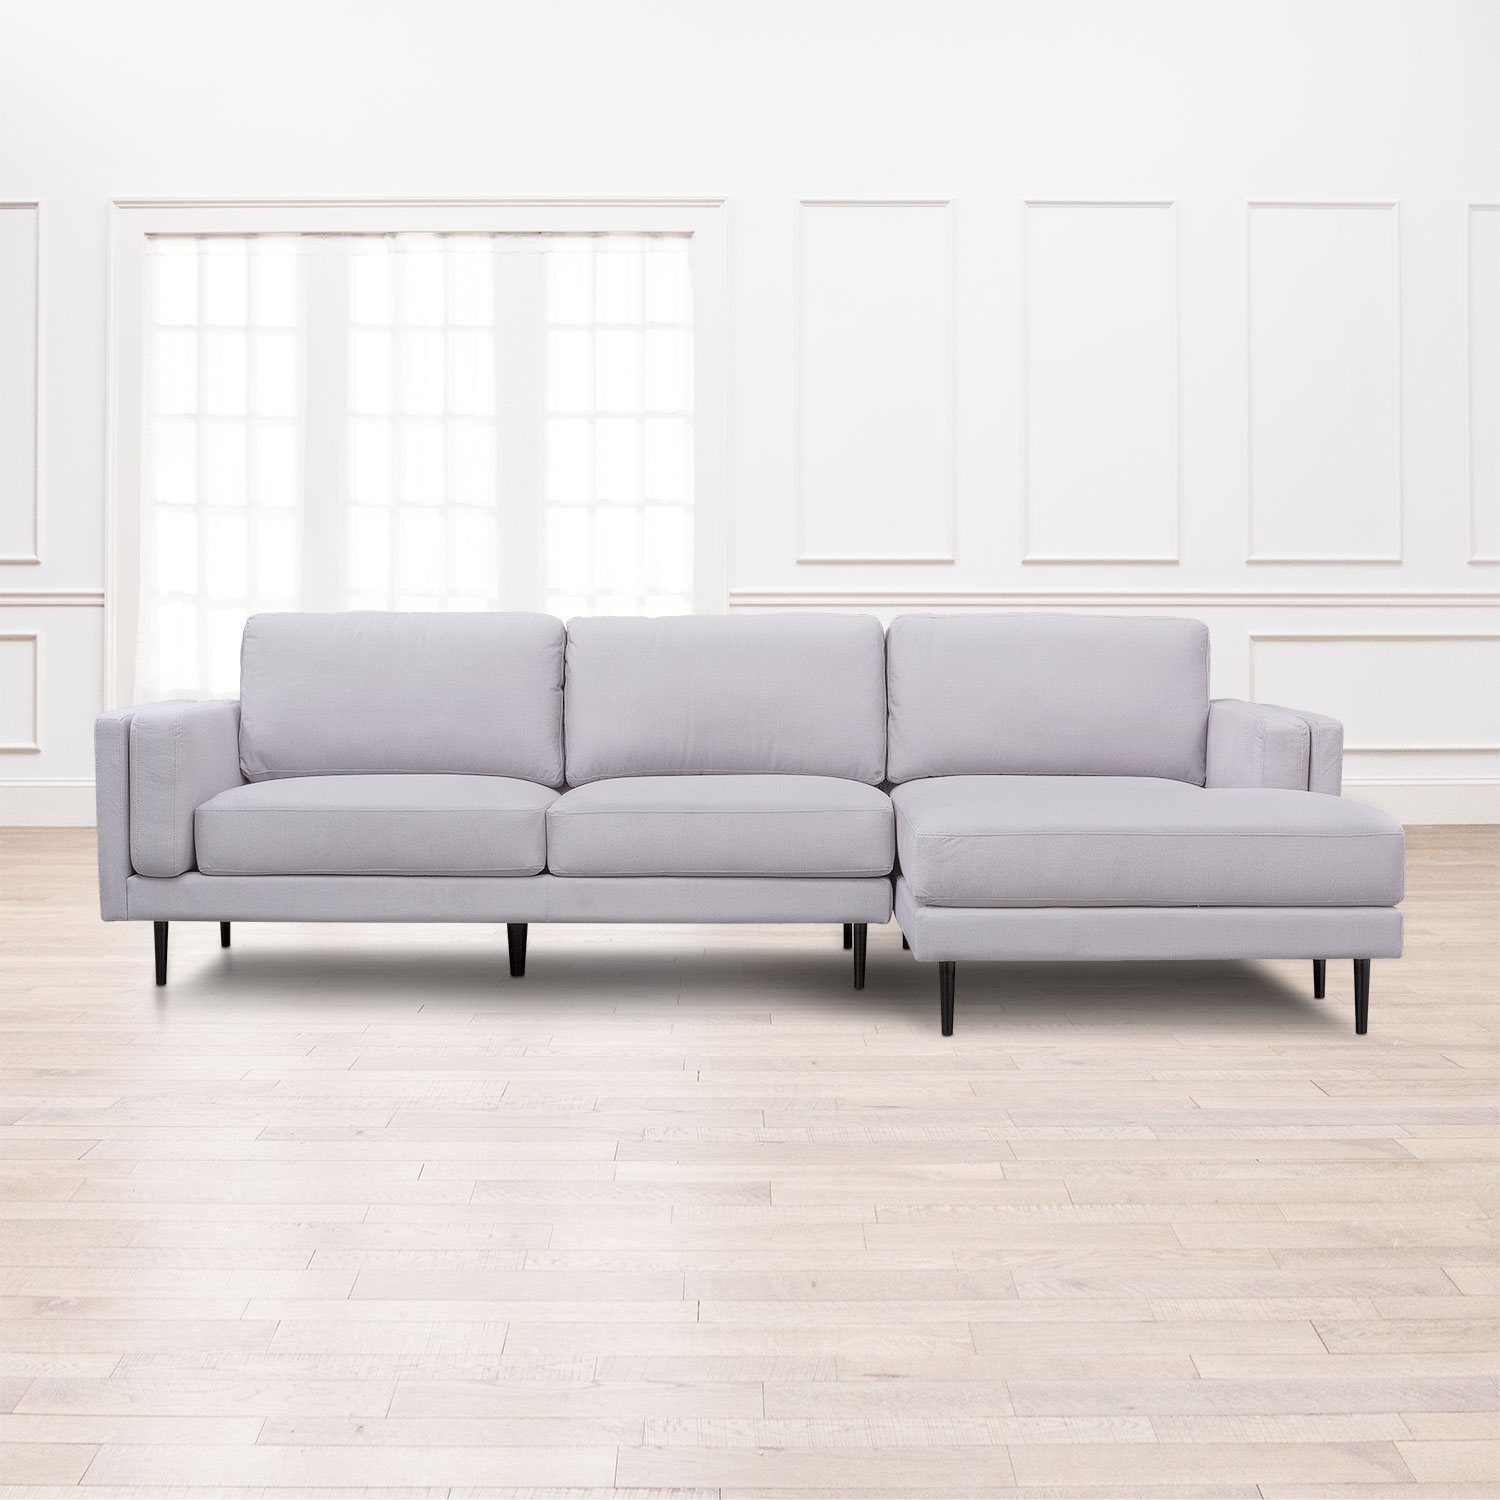 West End 2 Piece Sectional With Right Facing Chaise – Light Gray Inside Mcdade Graphite Sofa Chairs (Image 20 of 20)